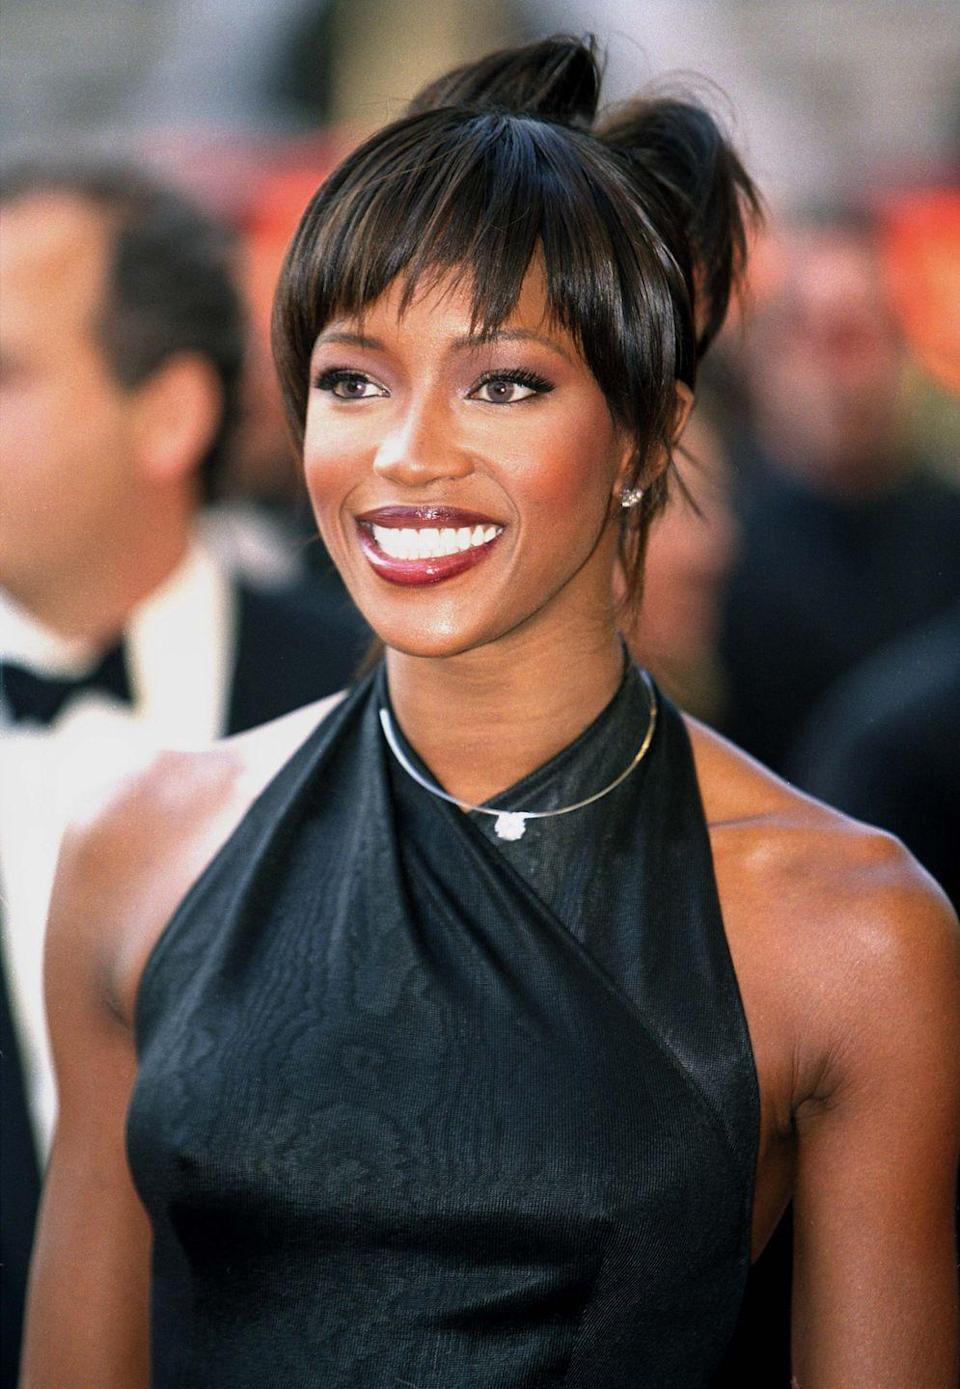 <p>Back in the 1980s and 1990s, Campbell (whose career started at 15 years old) was one considered to be one of the most in-demand models. </p>